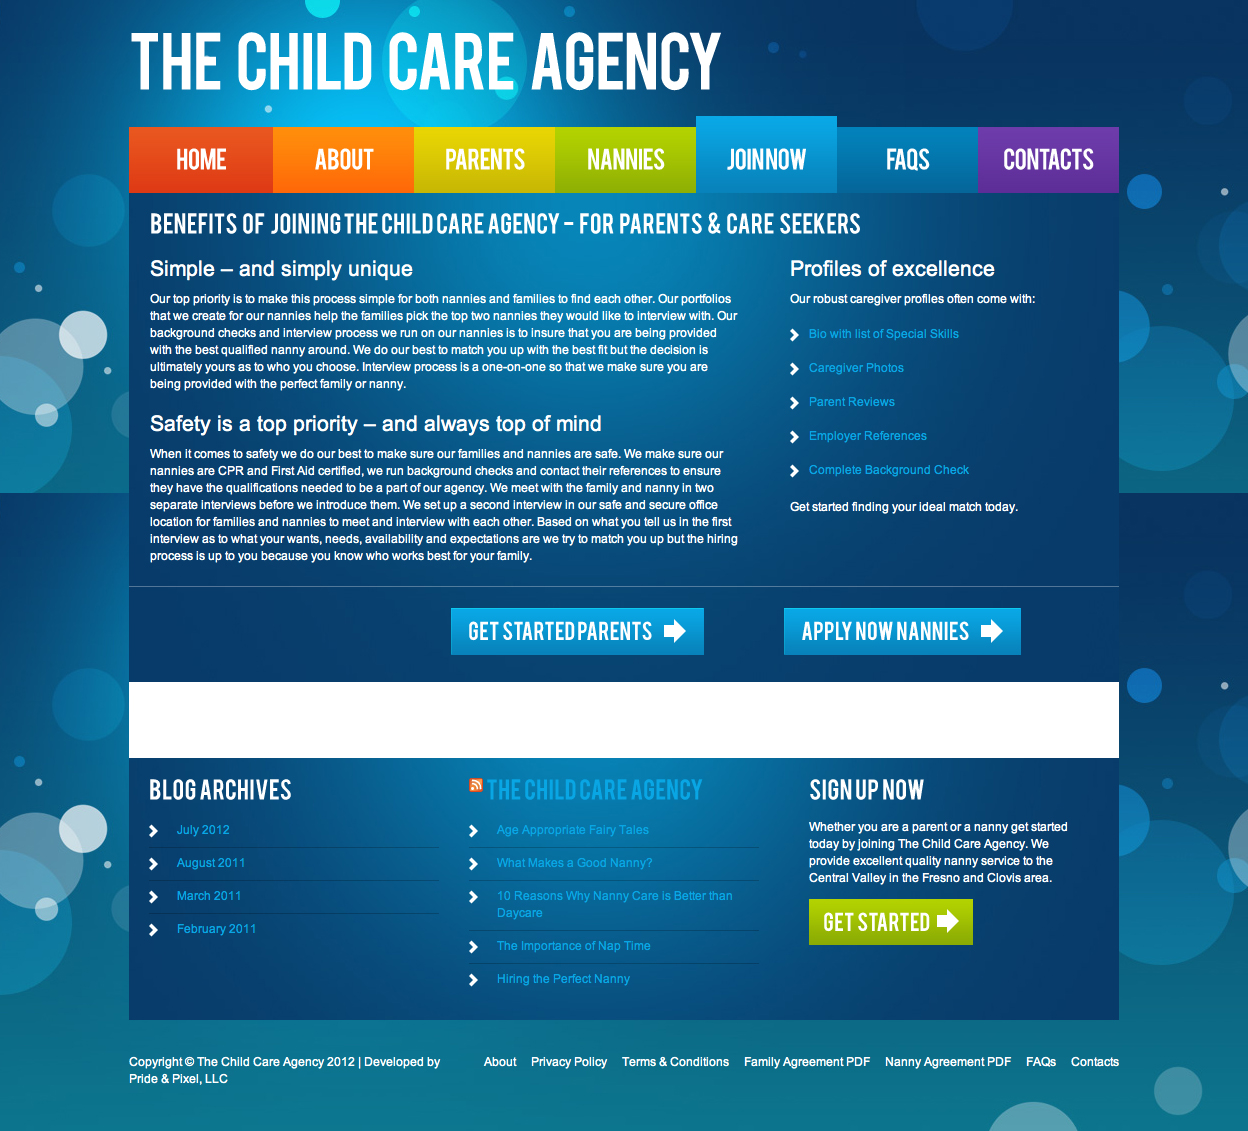 The Child Care Agency Join Now Page